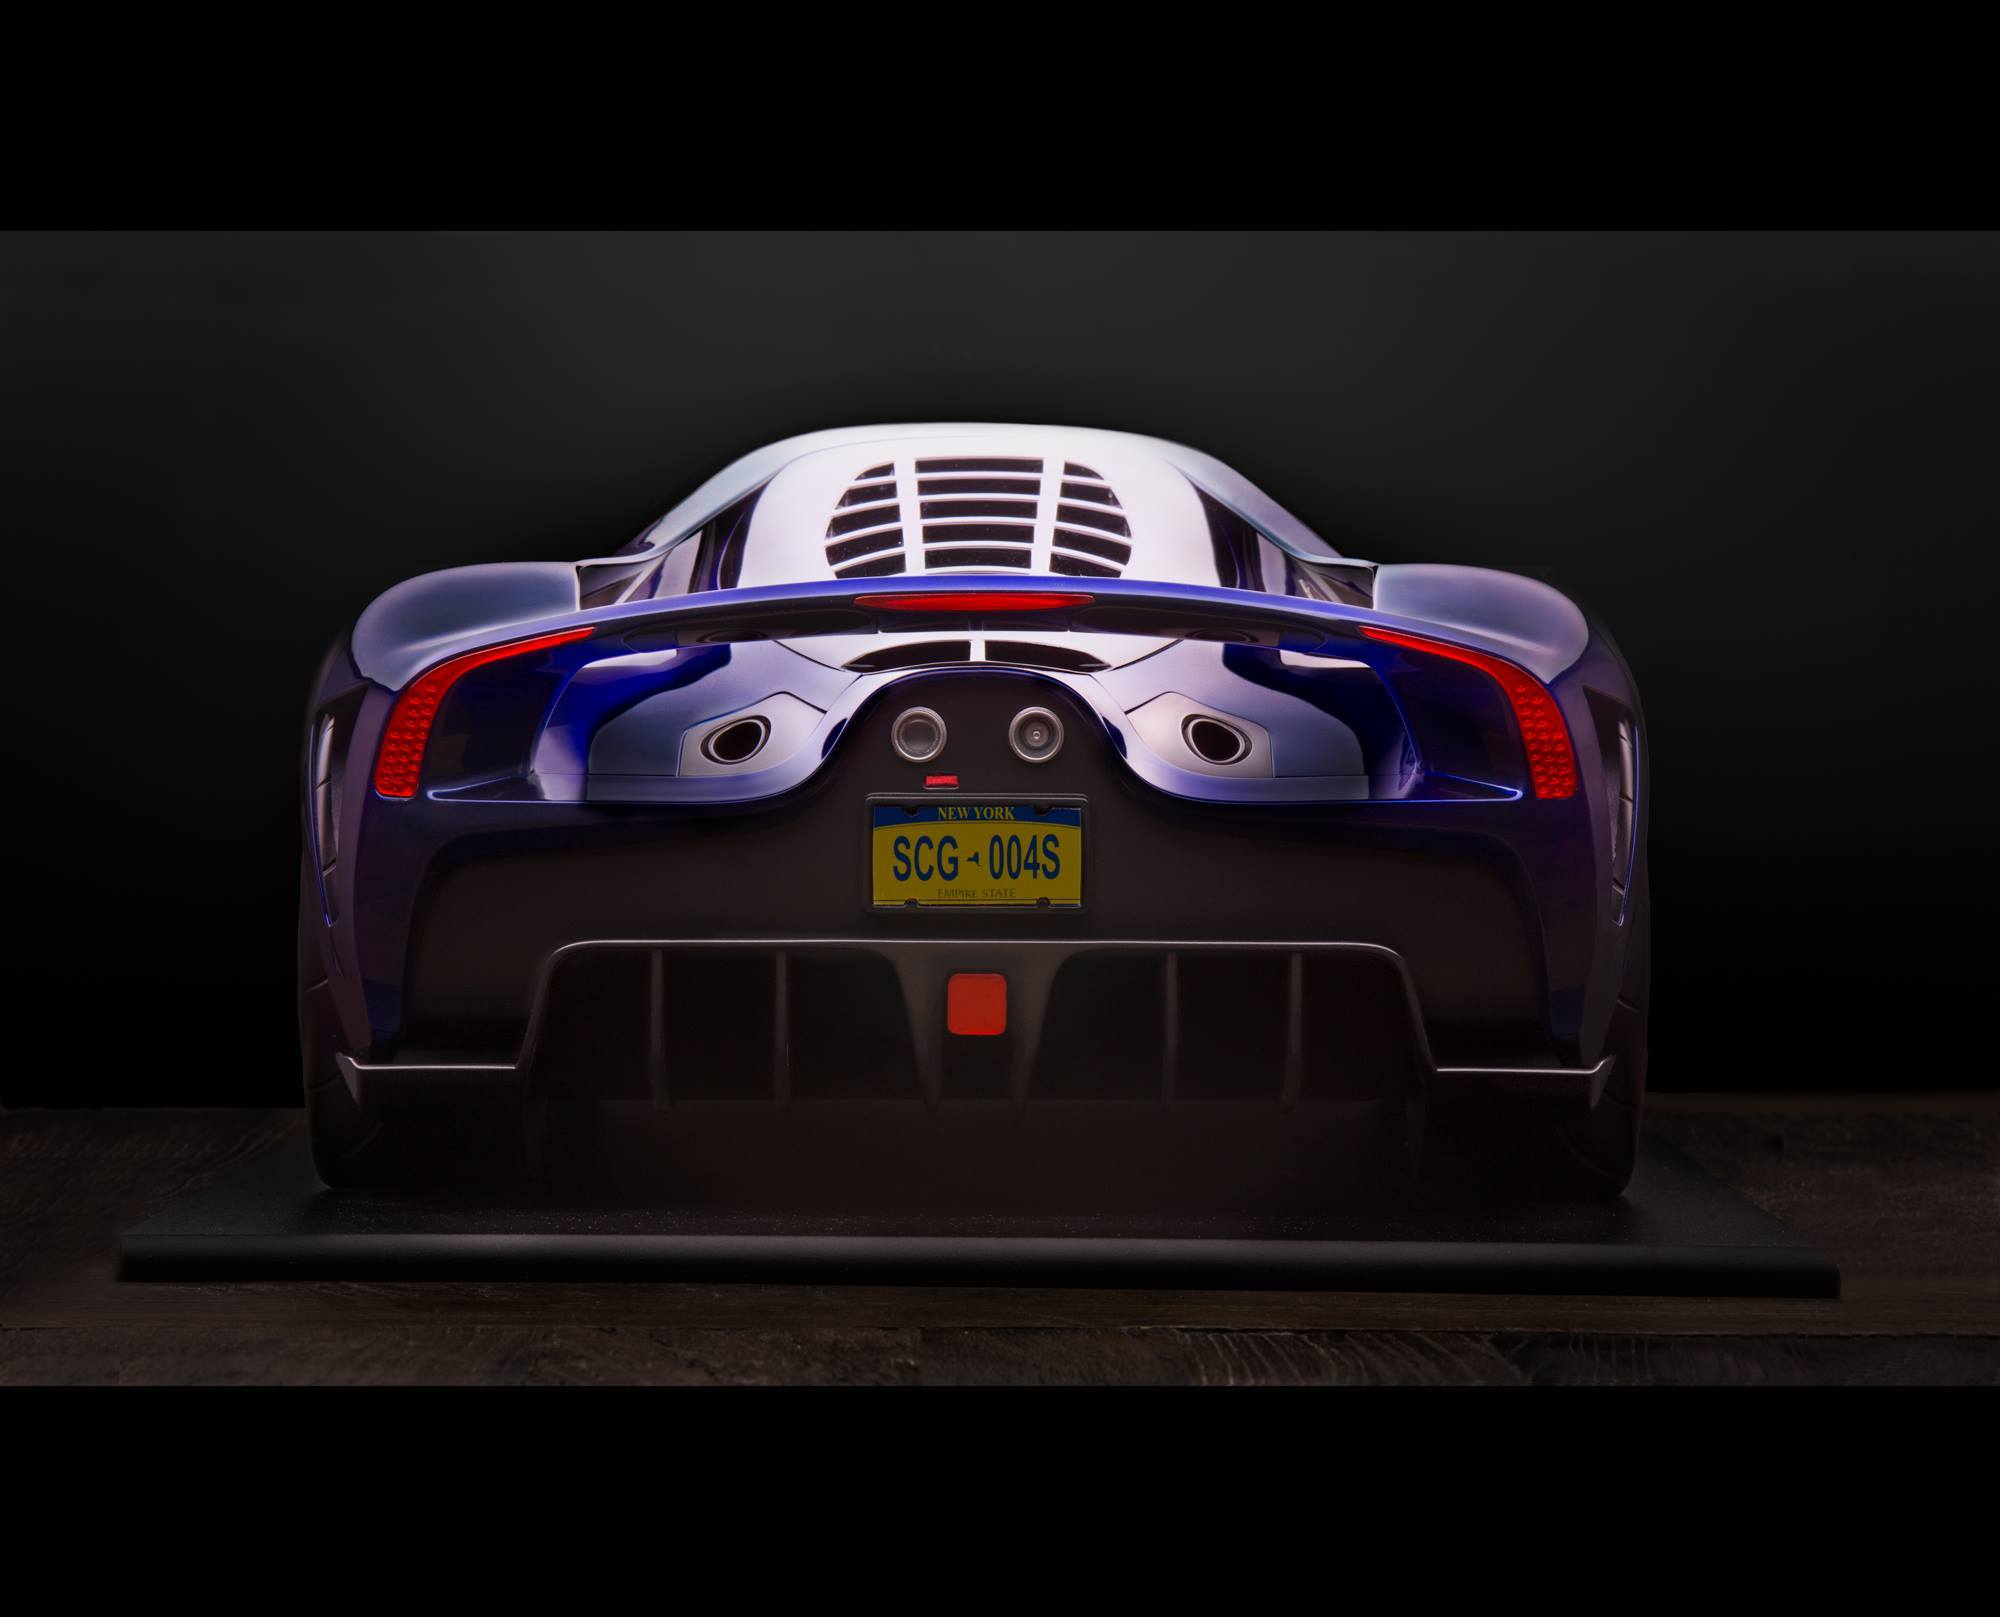 scuderia-cameron-glickenhaus-scg-004s-revealed-with-central-driving-position_4 Elegant Porsche 918 Spyder Nurburgring Lap Time Cars Trend